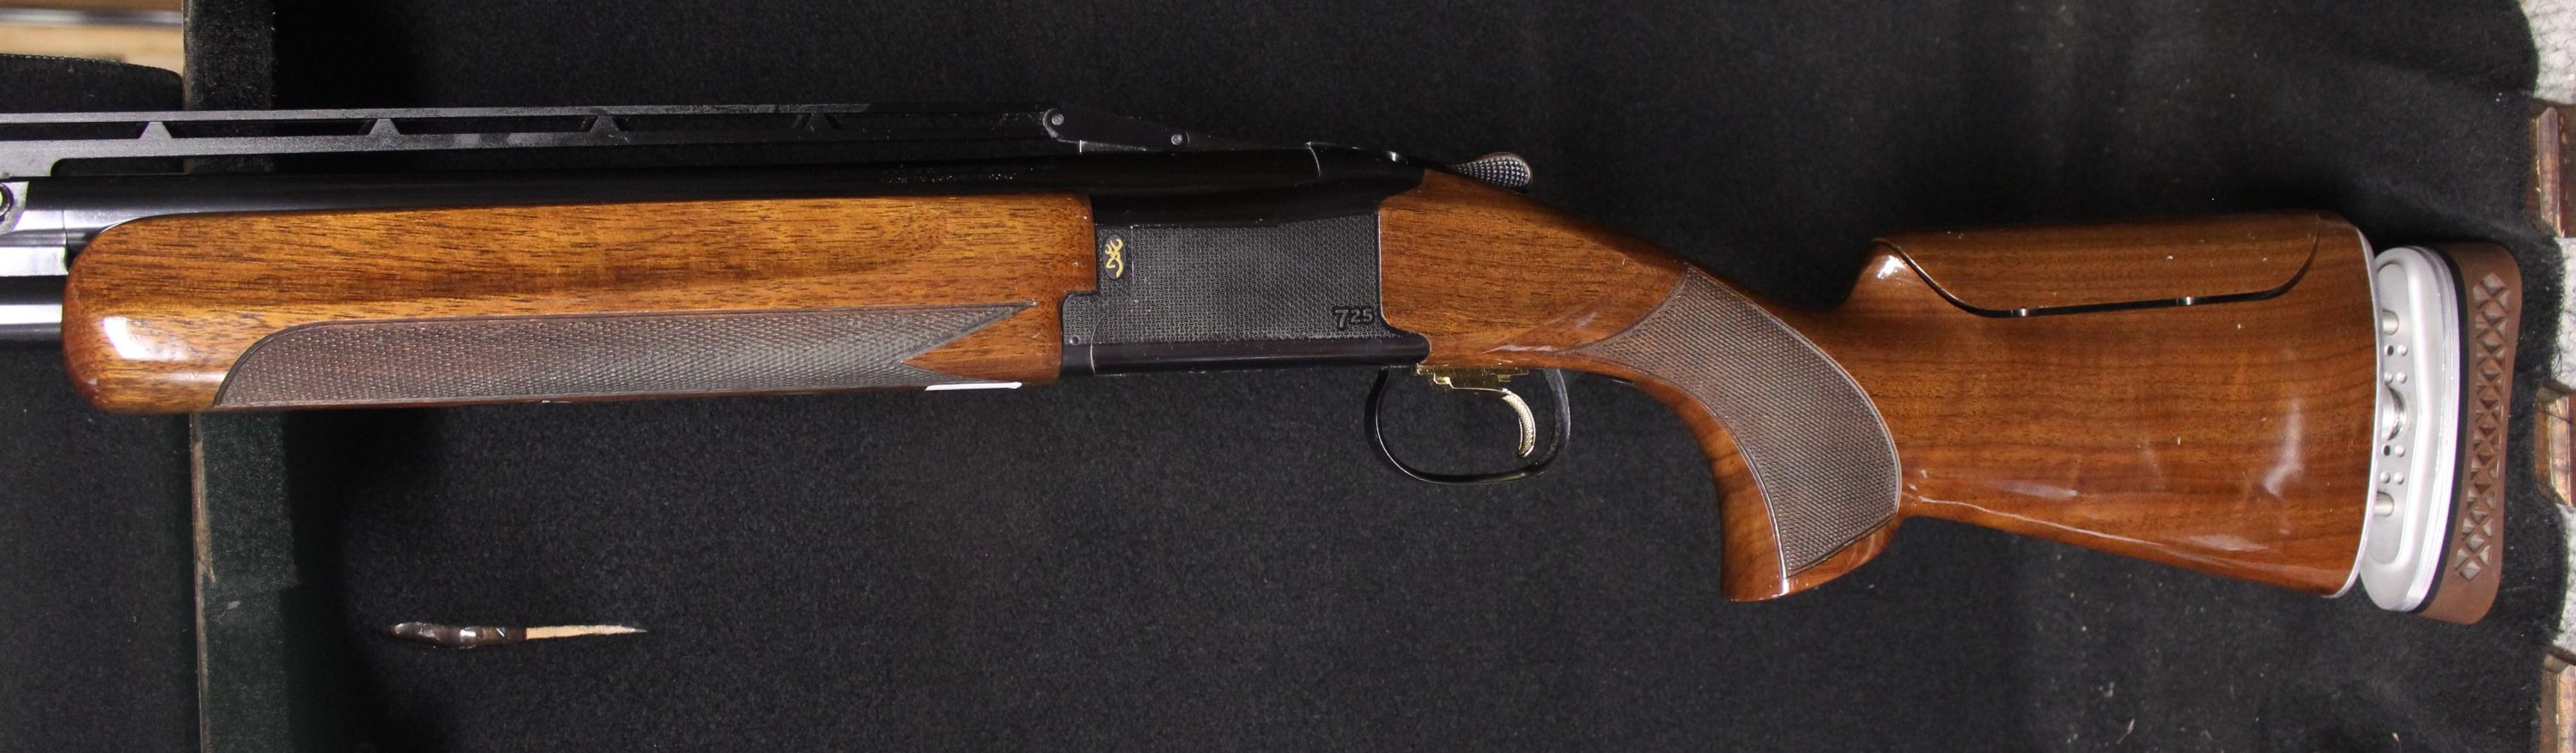 Browning 725 Unsingle